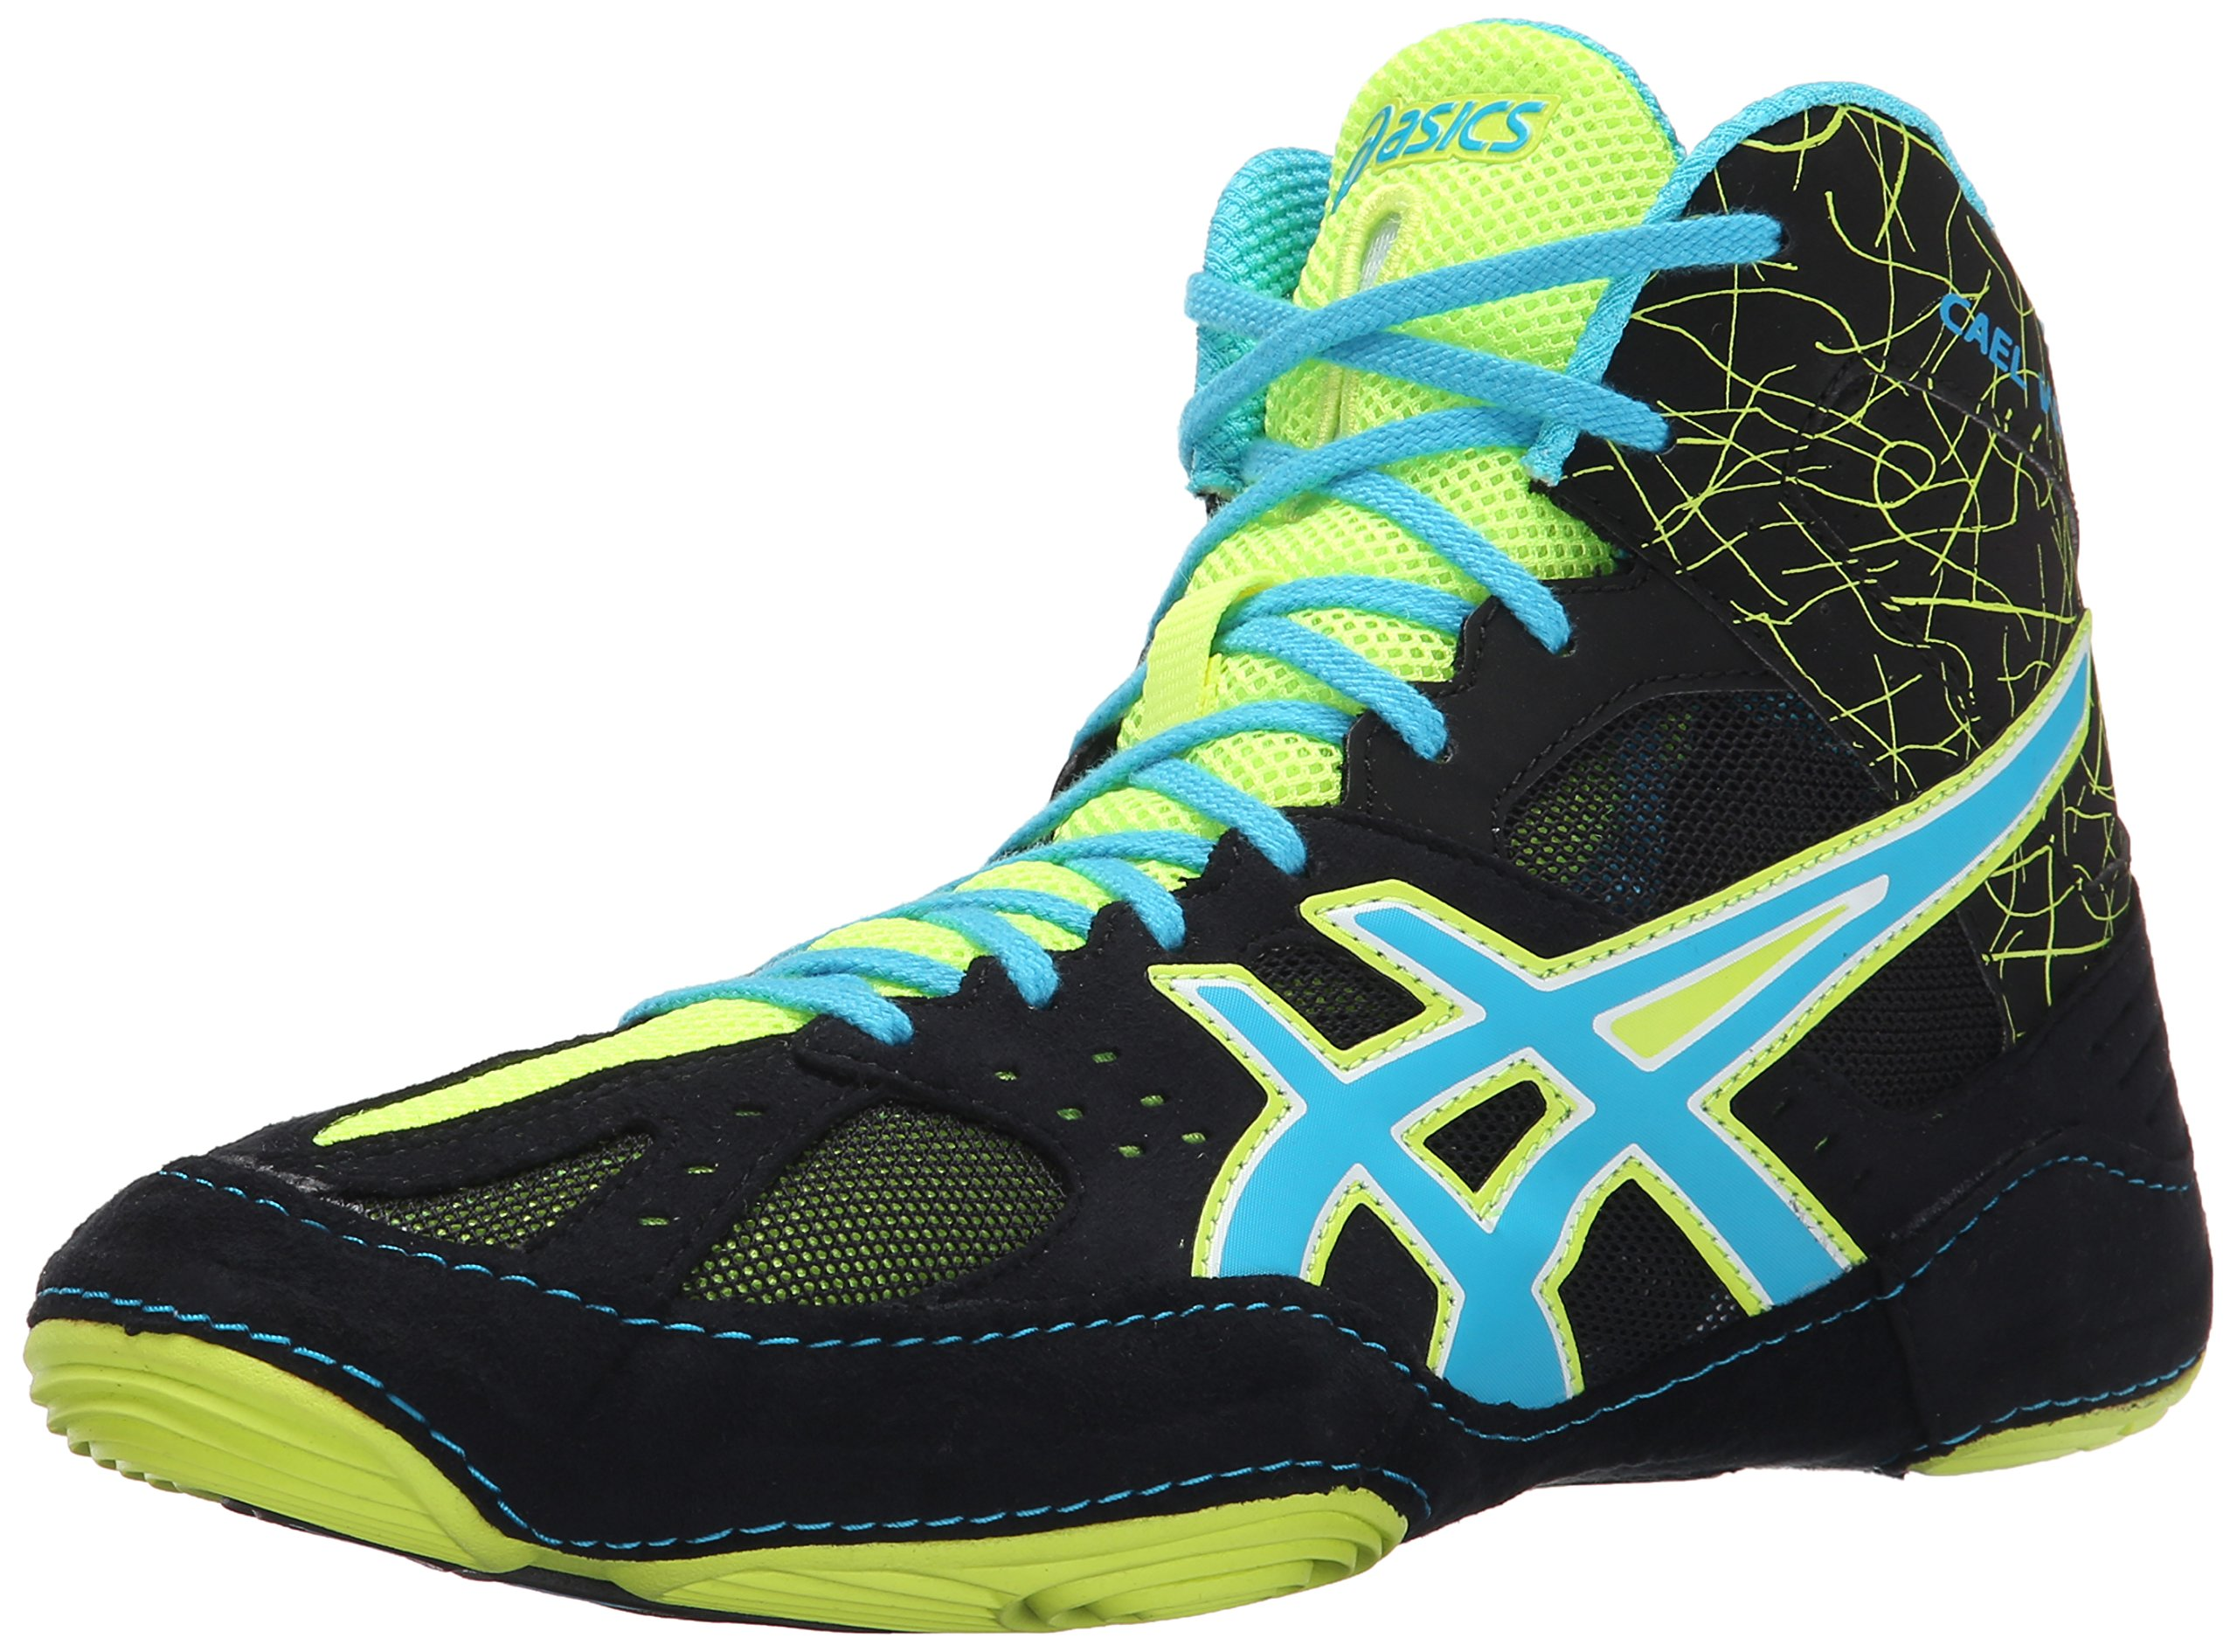 ASICS Men's Cael V6.0 Wrestling Shoe, Black/Atomic Blue/Flash Yellow, 9 M US by ASICS